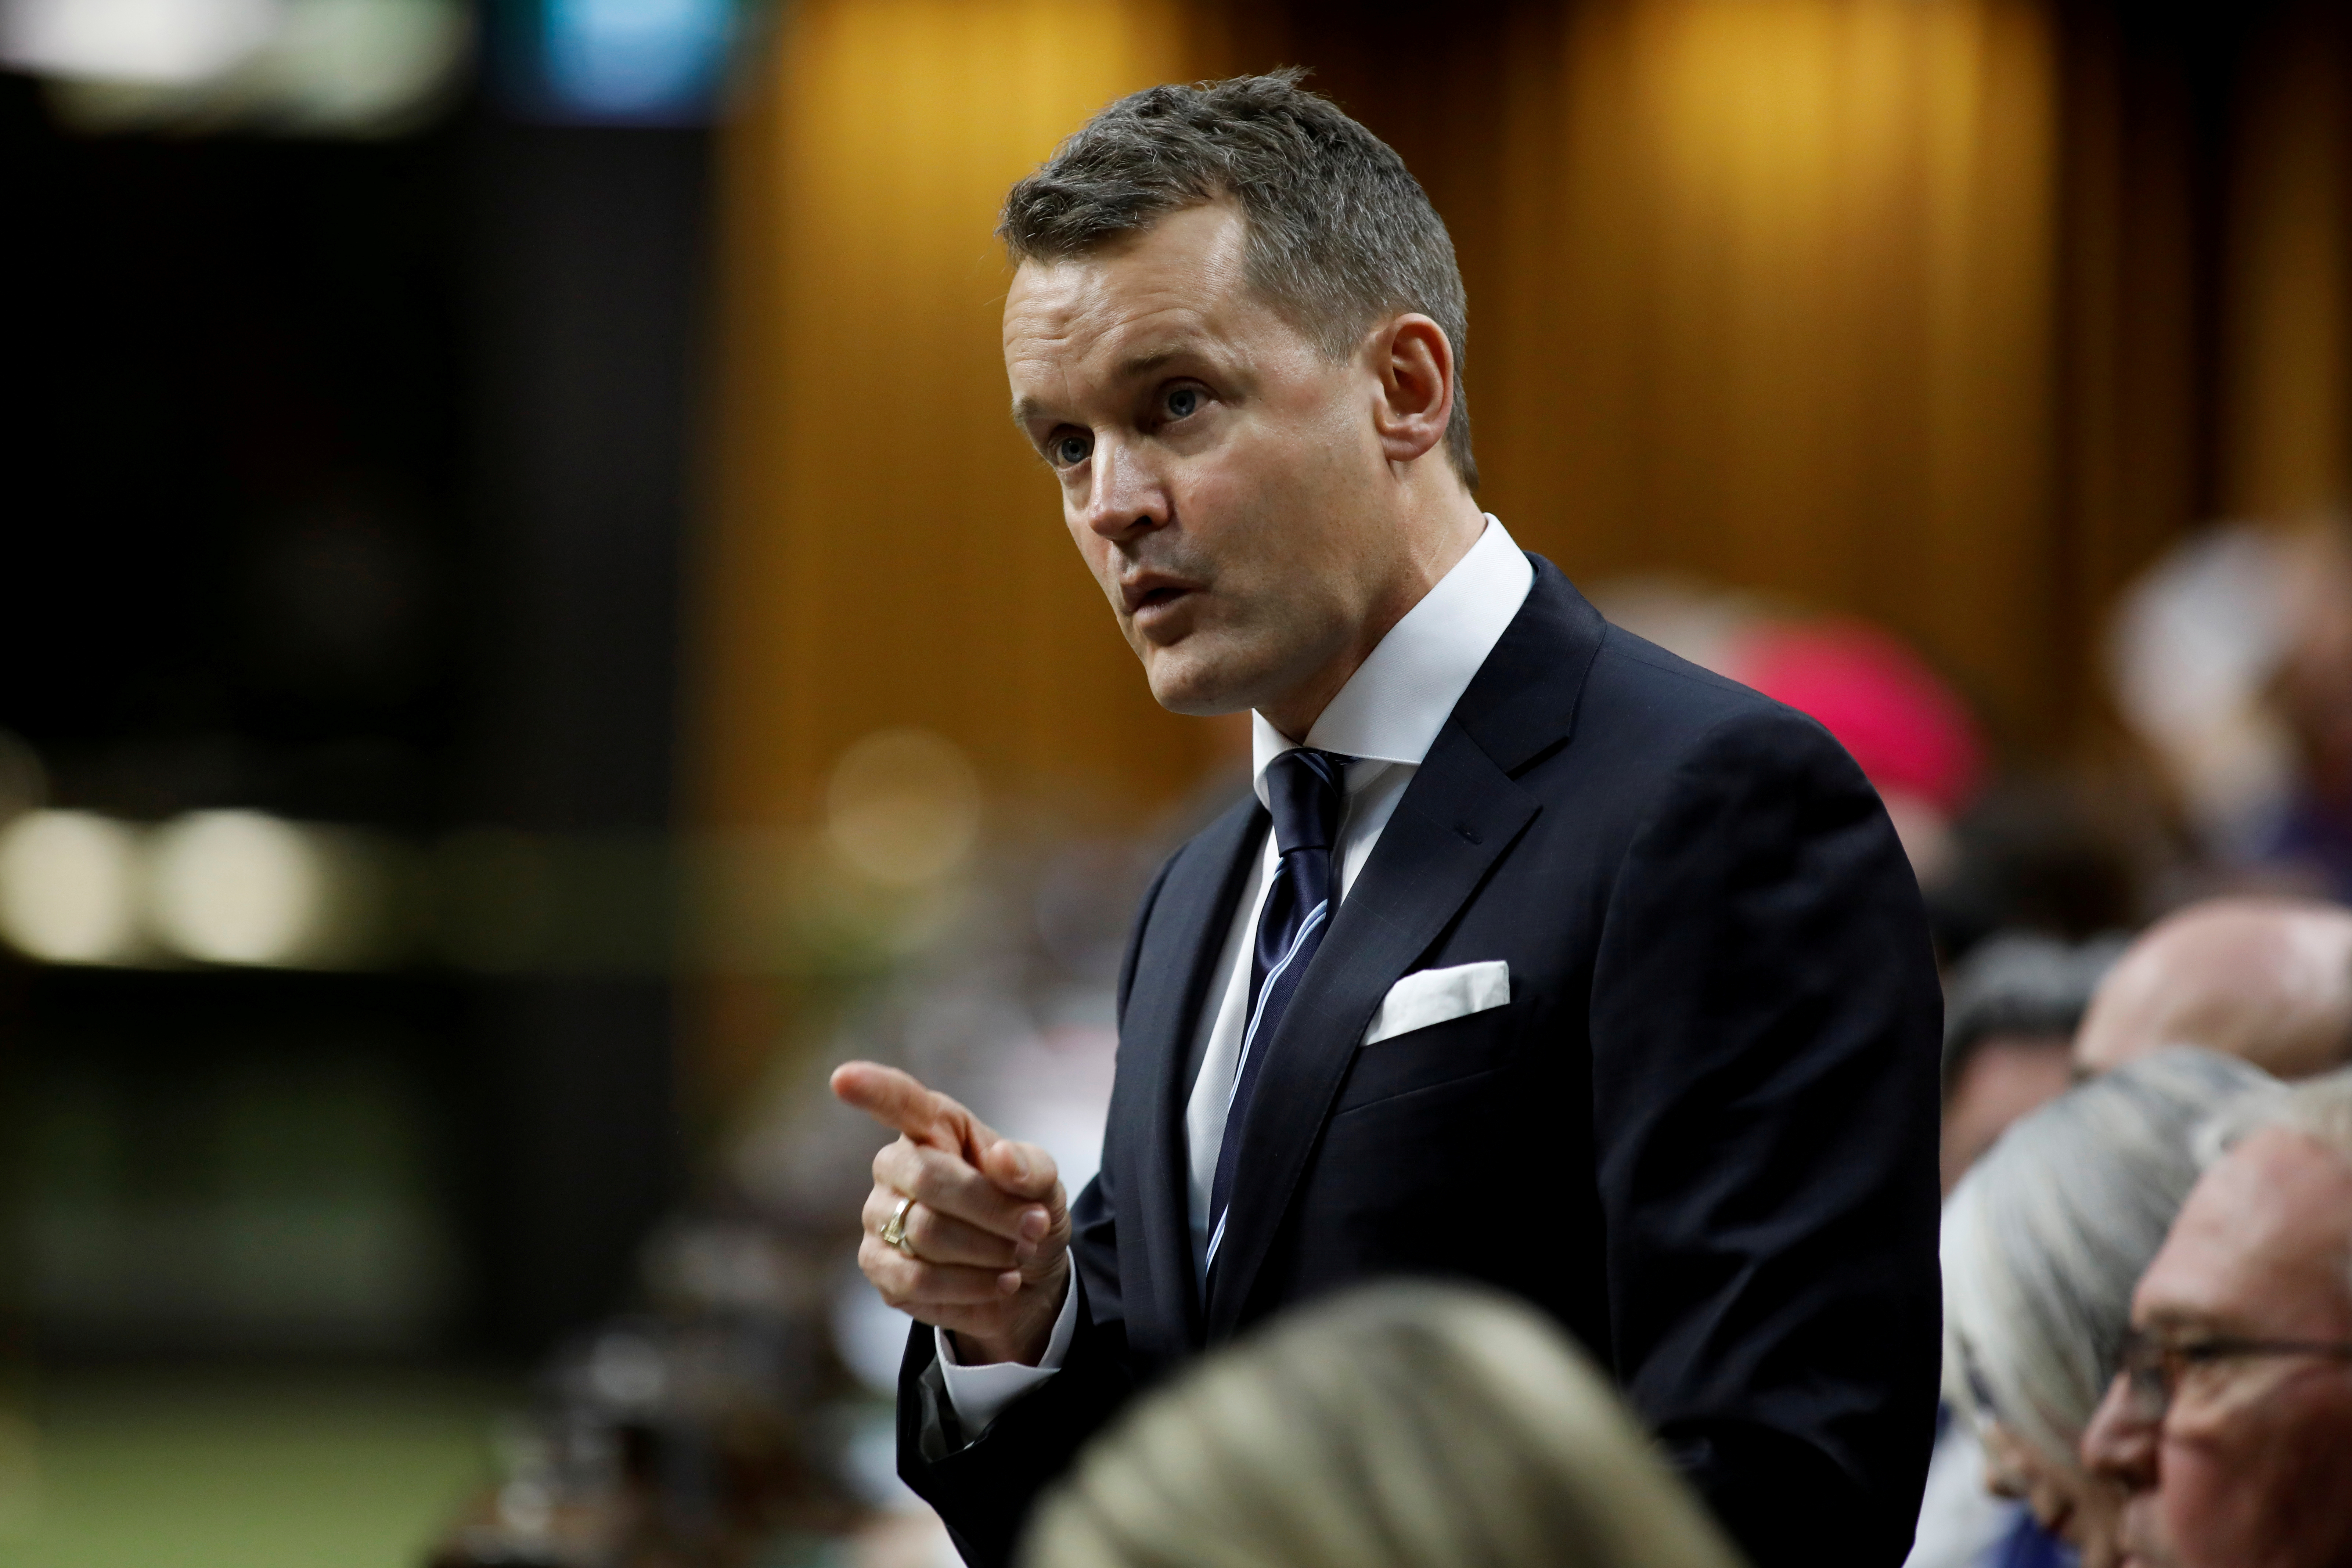 Canada's Minister of Natural Resources Seamus O'Regan speaks during Question Period in the House of Commons on Parliament Hill in Ottawa, Ontario, Canada December 10, 2019.  REUTERS/Blair Gable/File Photo